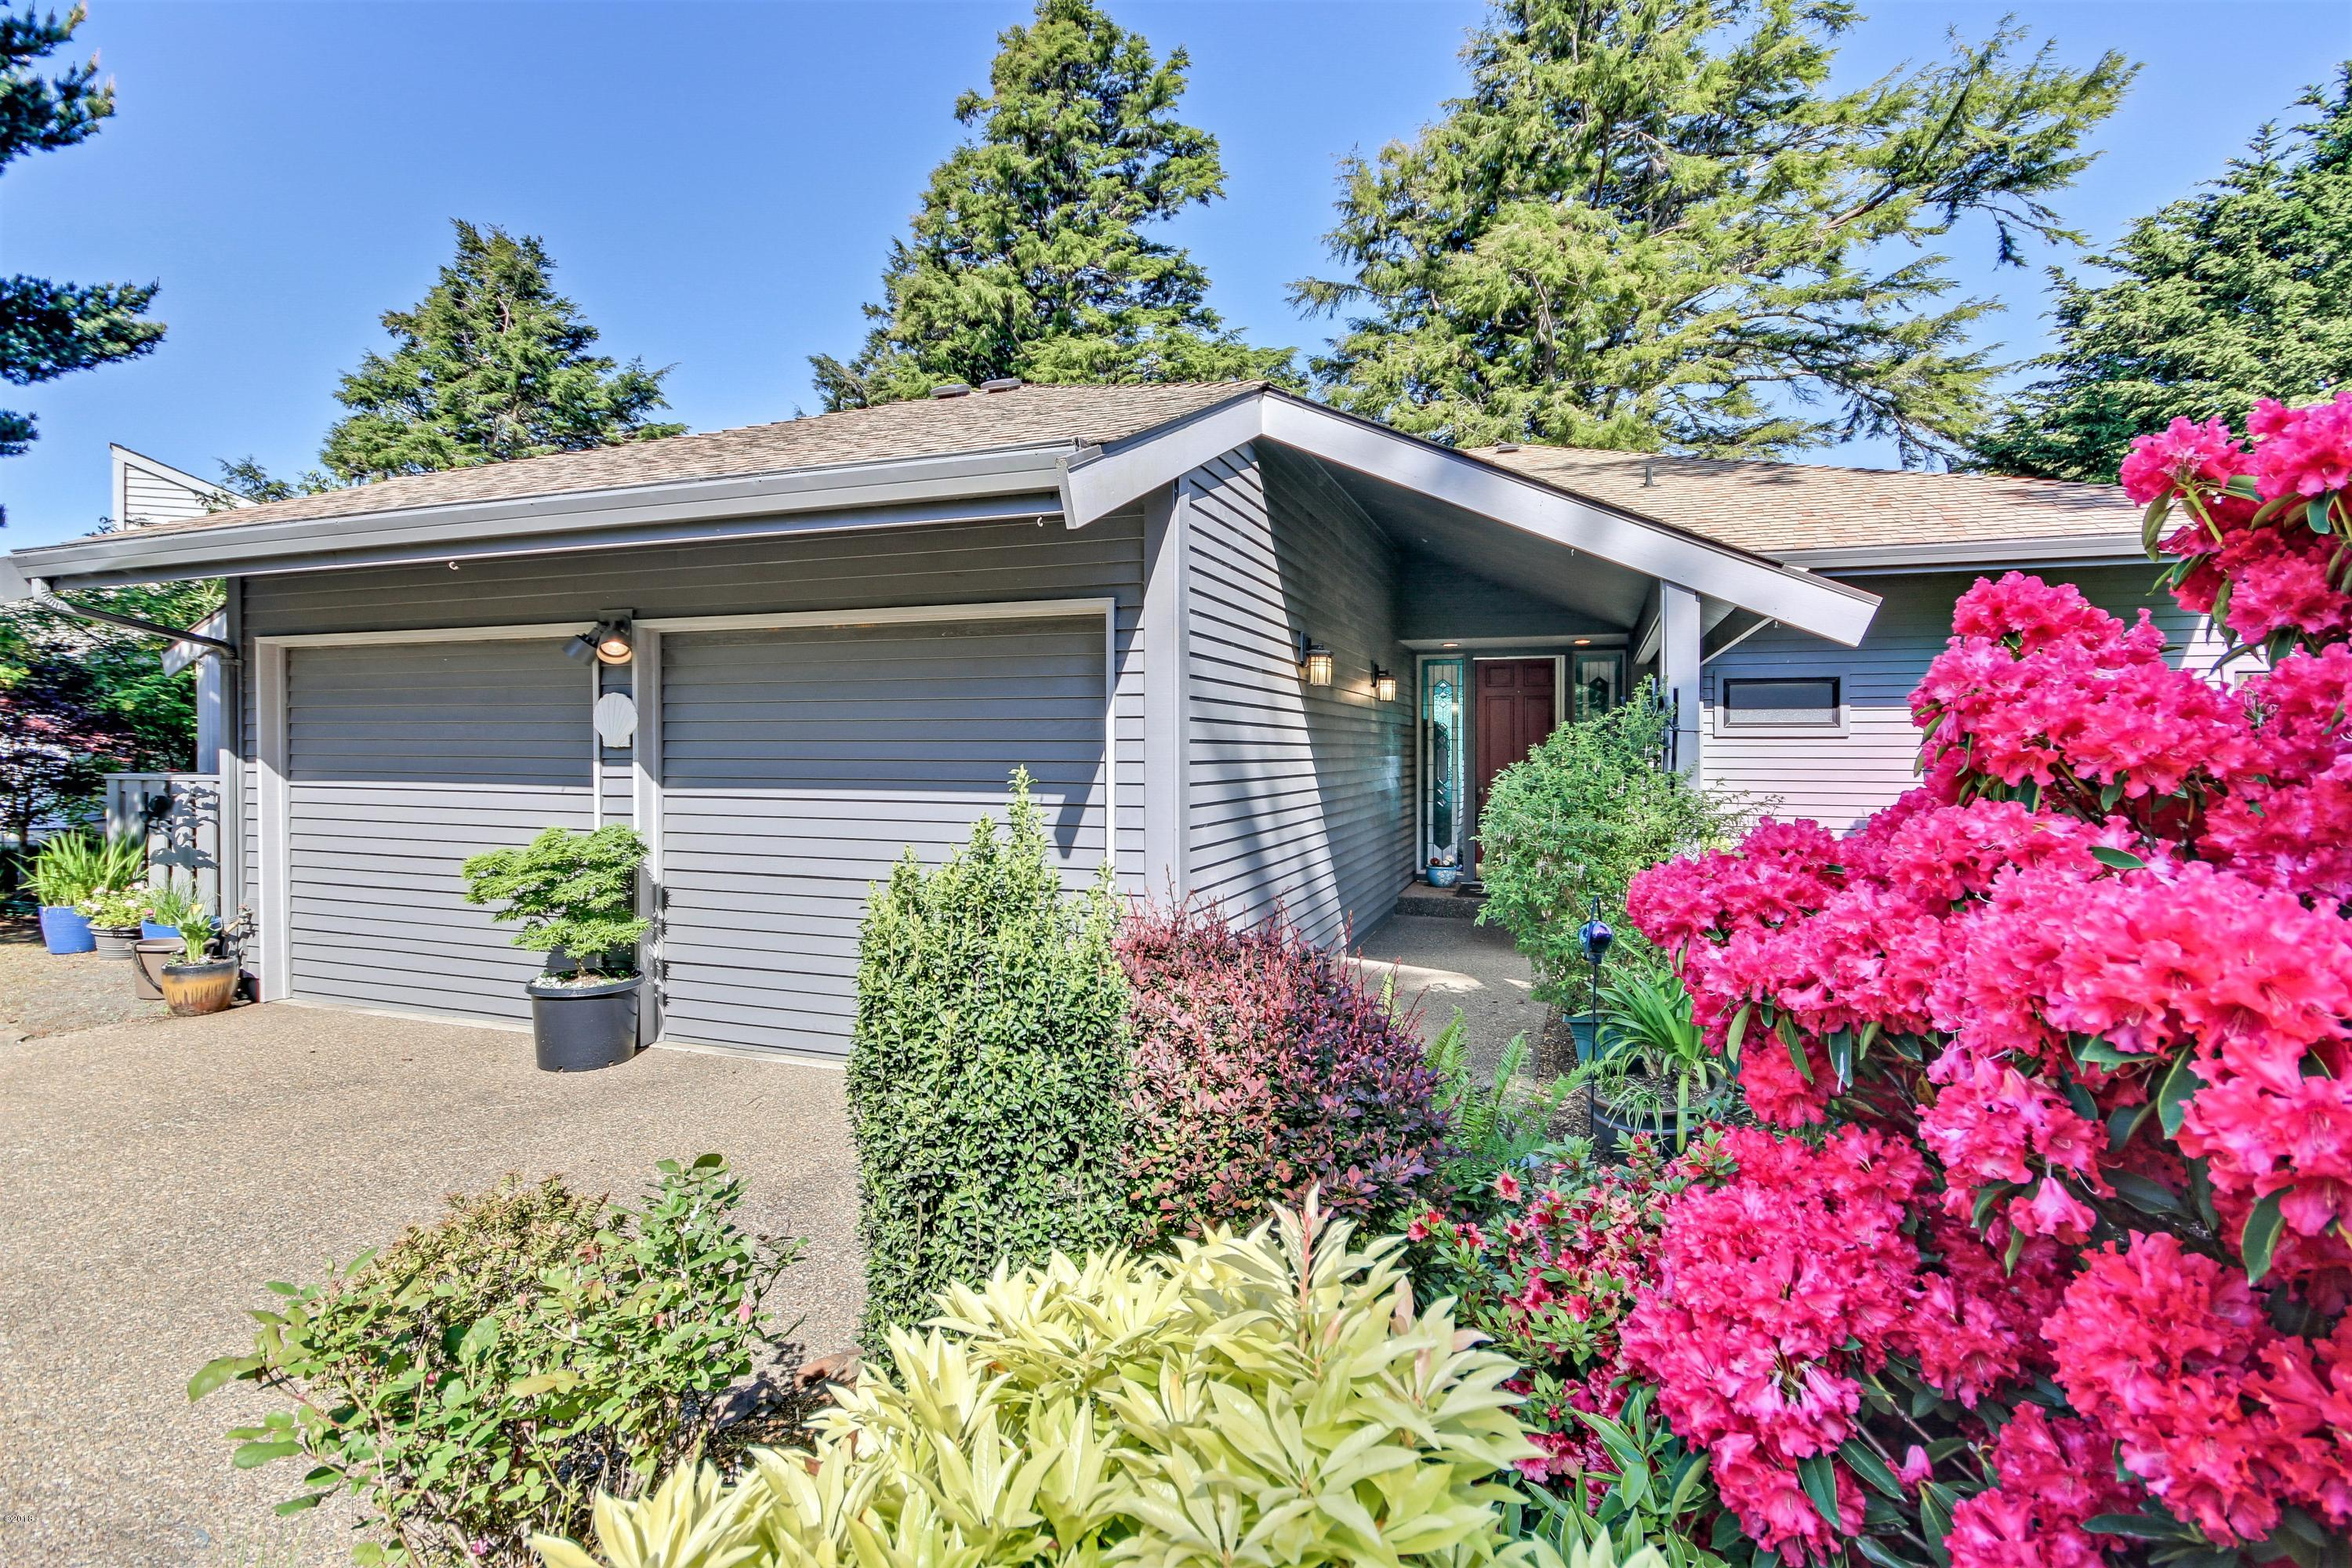 446 Summitview Ln, Gleneden Beach, OR 97388